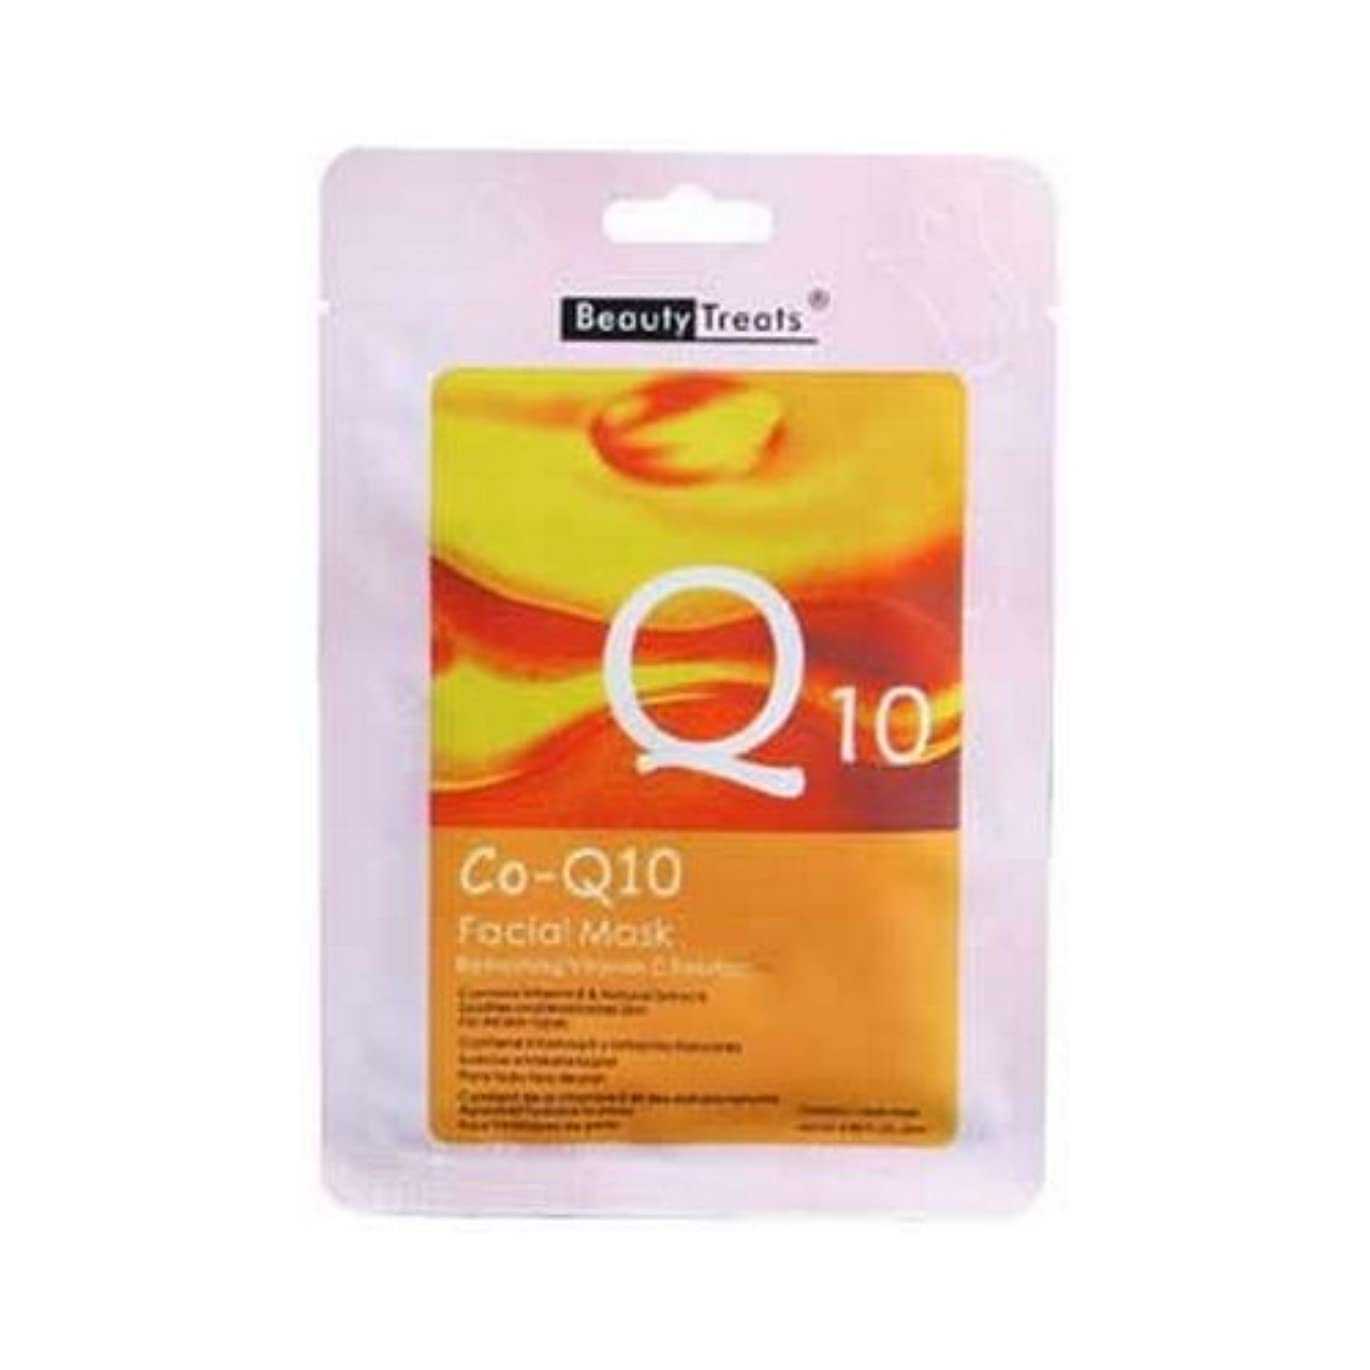 アーティスト無駄だ実り多い(3 Pack) BEAUTY TREATS Facial Mask Refreshing Vitamin C Solution - Co-Q10 (並行輸入品)